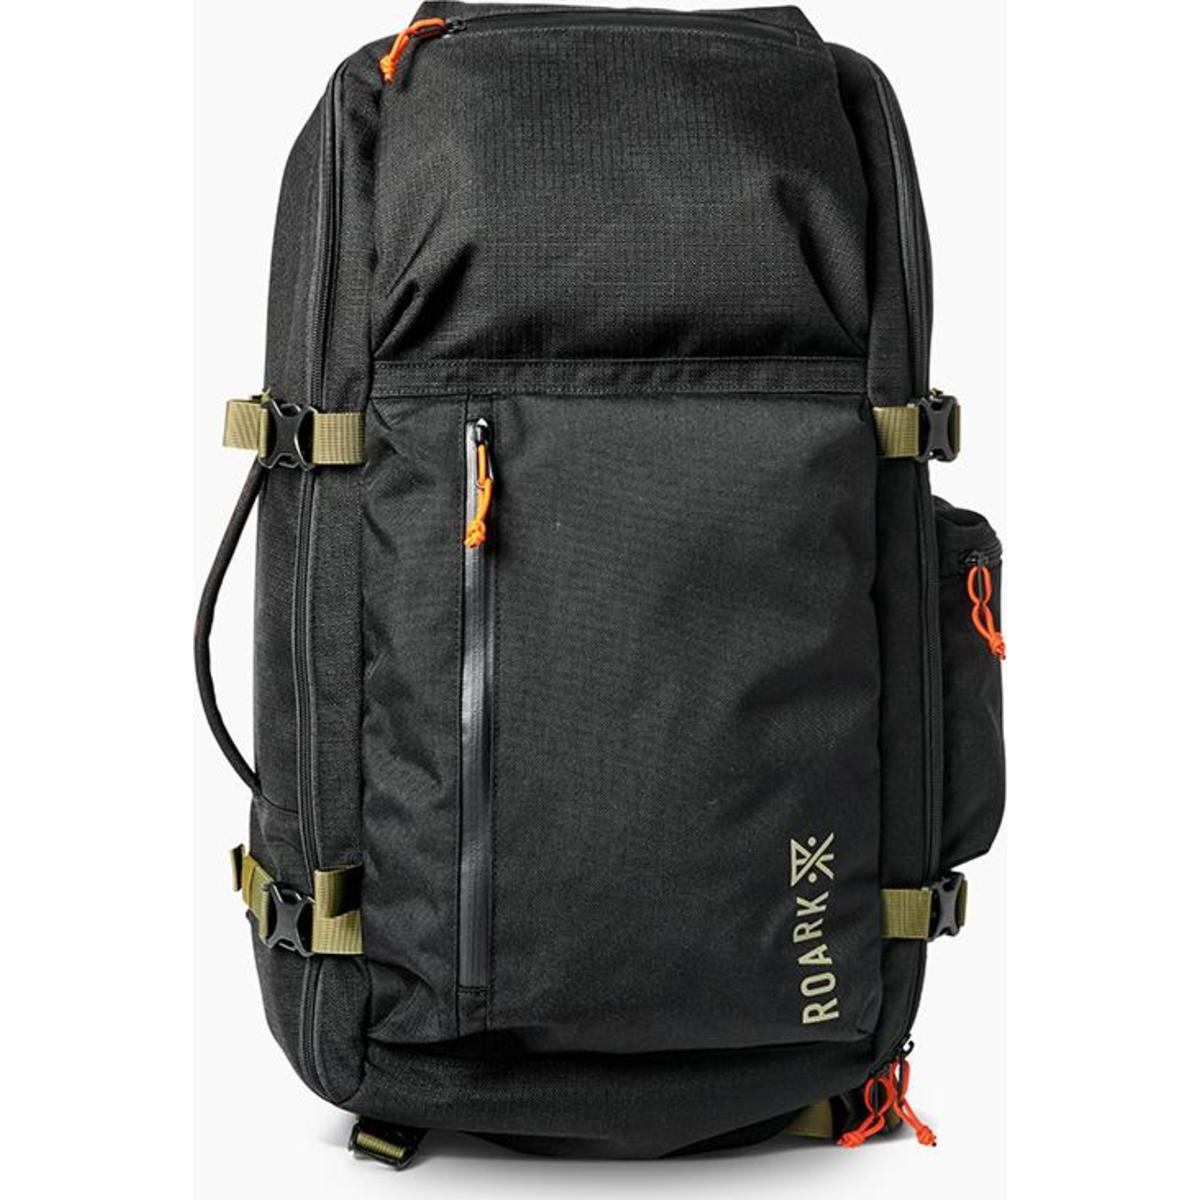 Roark Revival 5-Day Mule 55L Bag